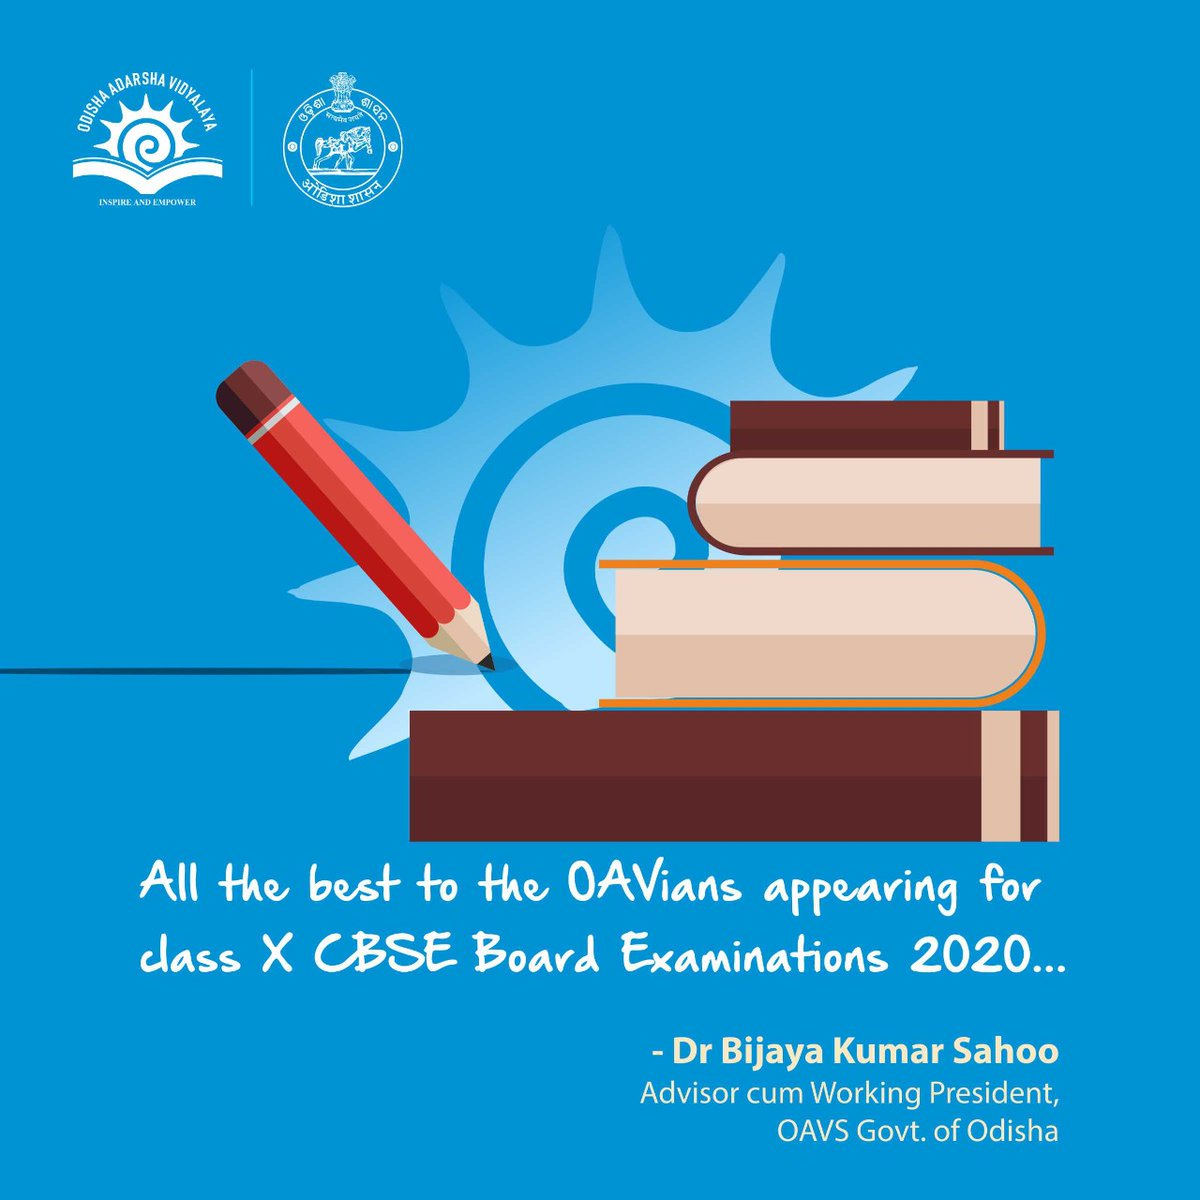 Wishing my OAVians luck for their #AISSE2020... Im sure you all will do brilliantly well.. god bless you all.. #OAVS @CMO_Odisha @Naveen_Odisha @samirdash01 @OAVS_Official